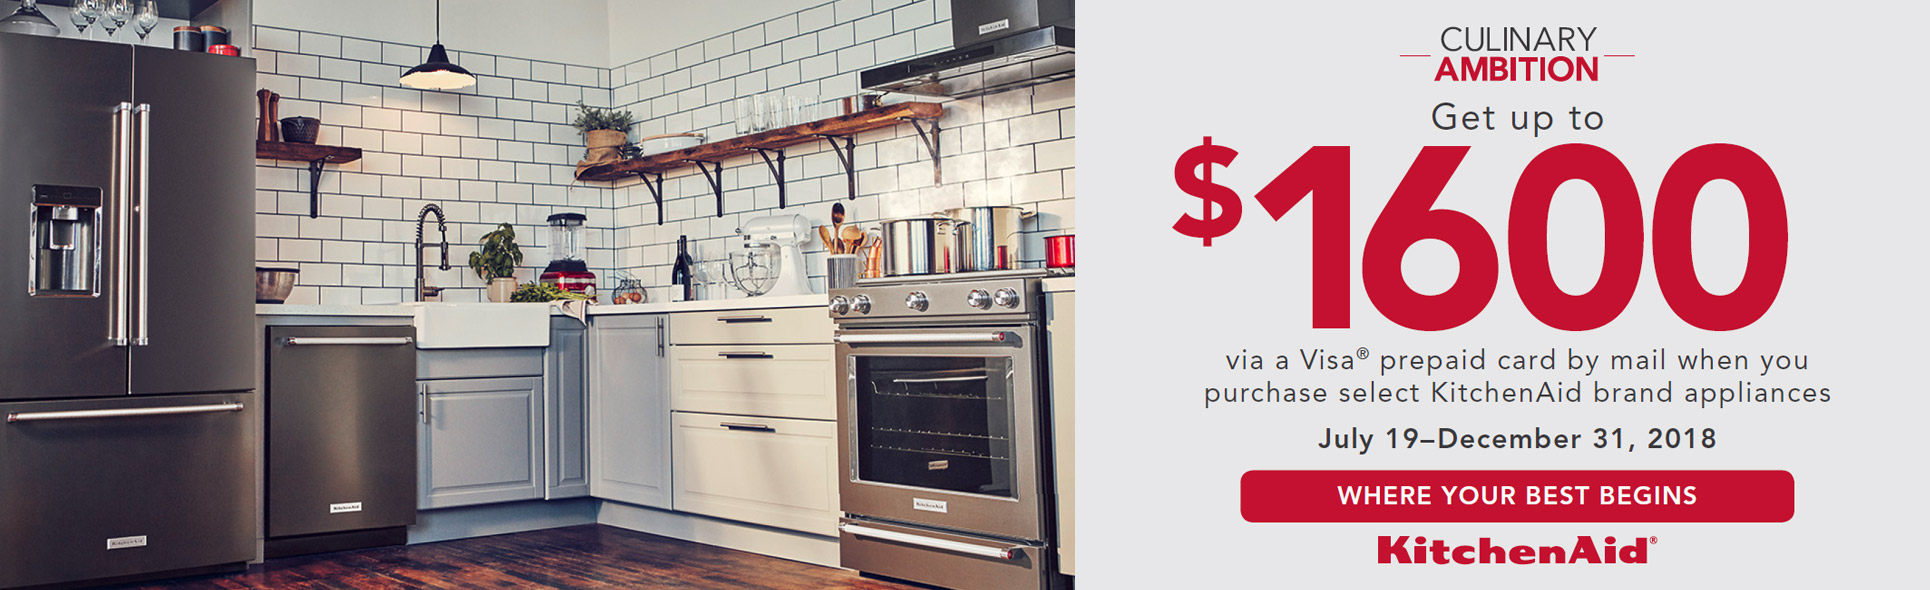 KitchenAid Culinary Ambition- Save up to $1600